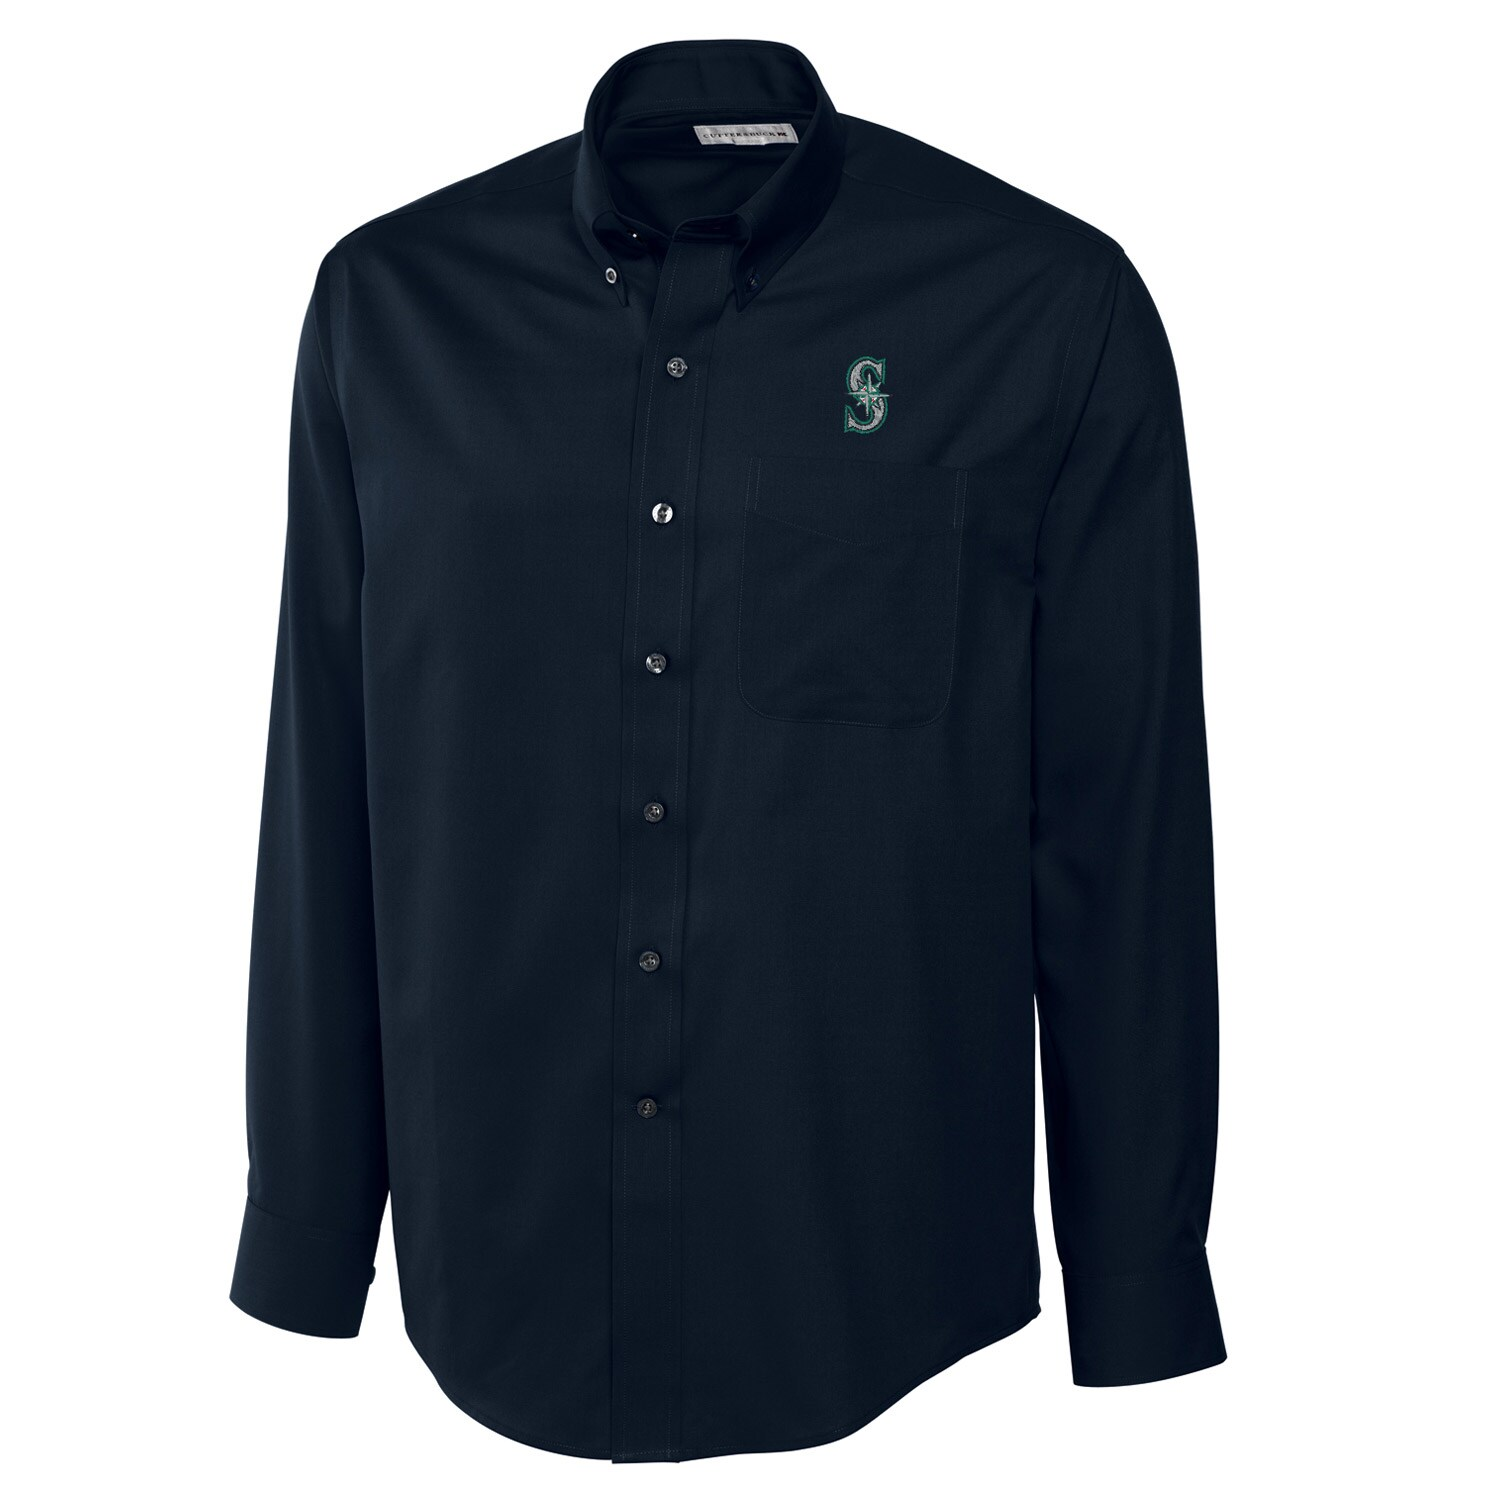 Seattle Mariners Cutter & Buck Big & Tall Epic Easy Care Fine Twill Long Sleeve Shirt - Navy